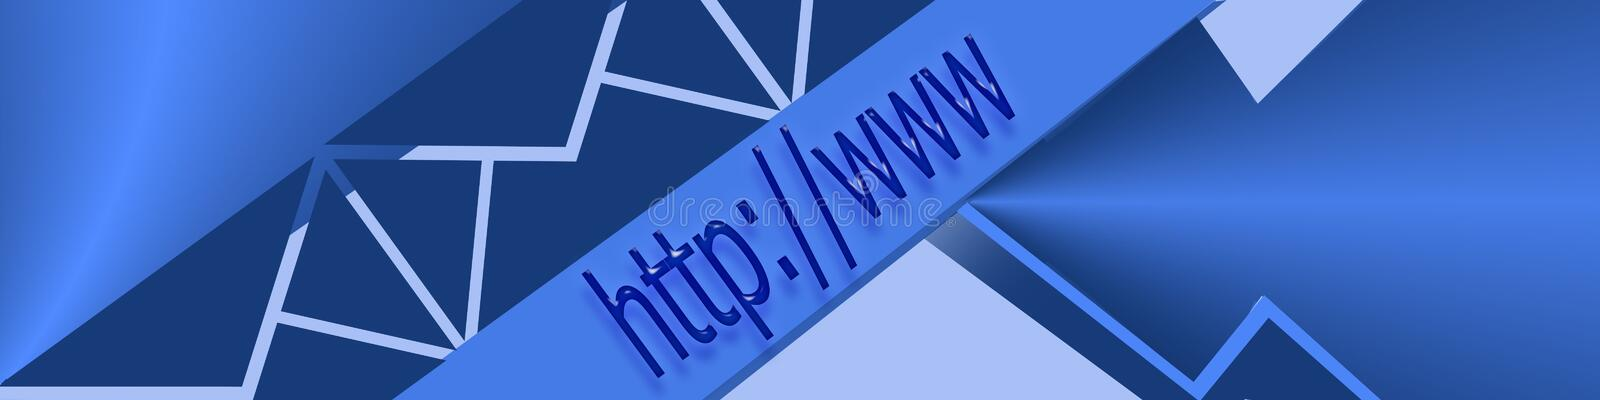 Header Surfing the Internet. Graphic of address bar on computer with an artistic arrow and e-mail envelopes; overall blue tint stock illustration